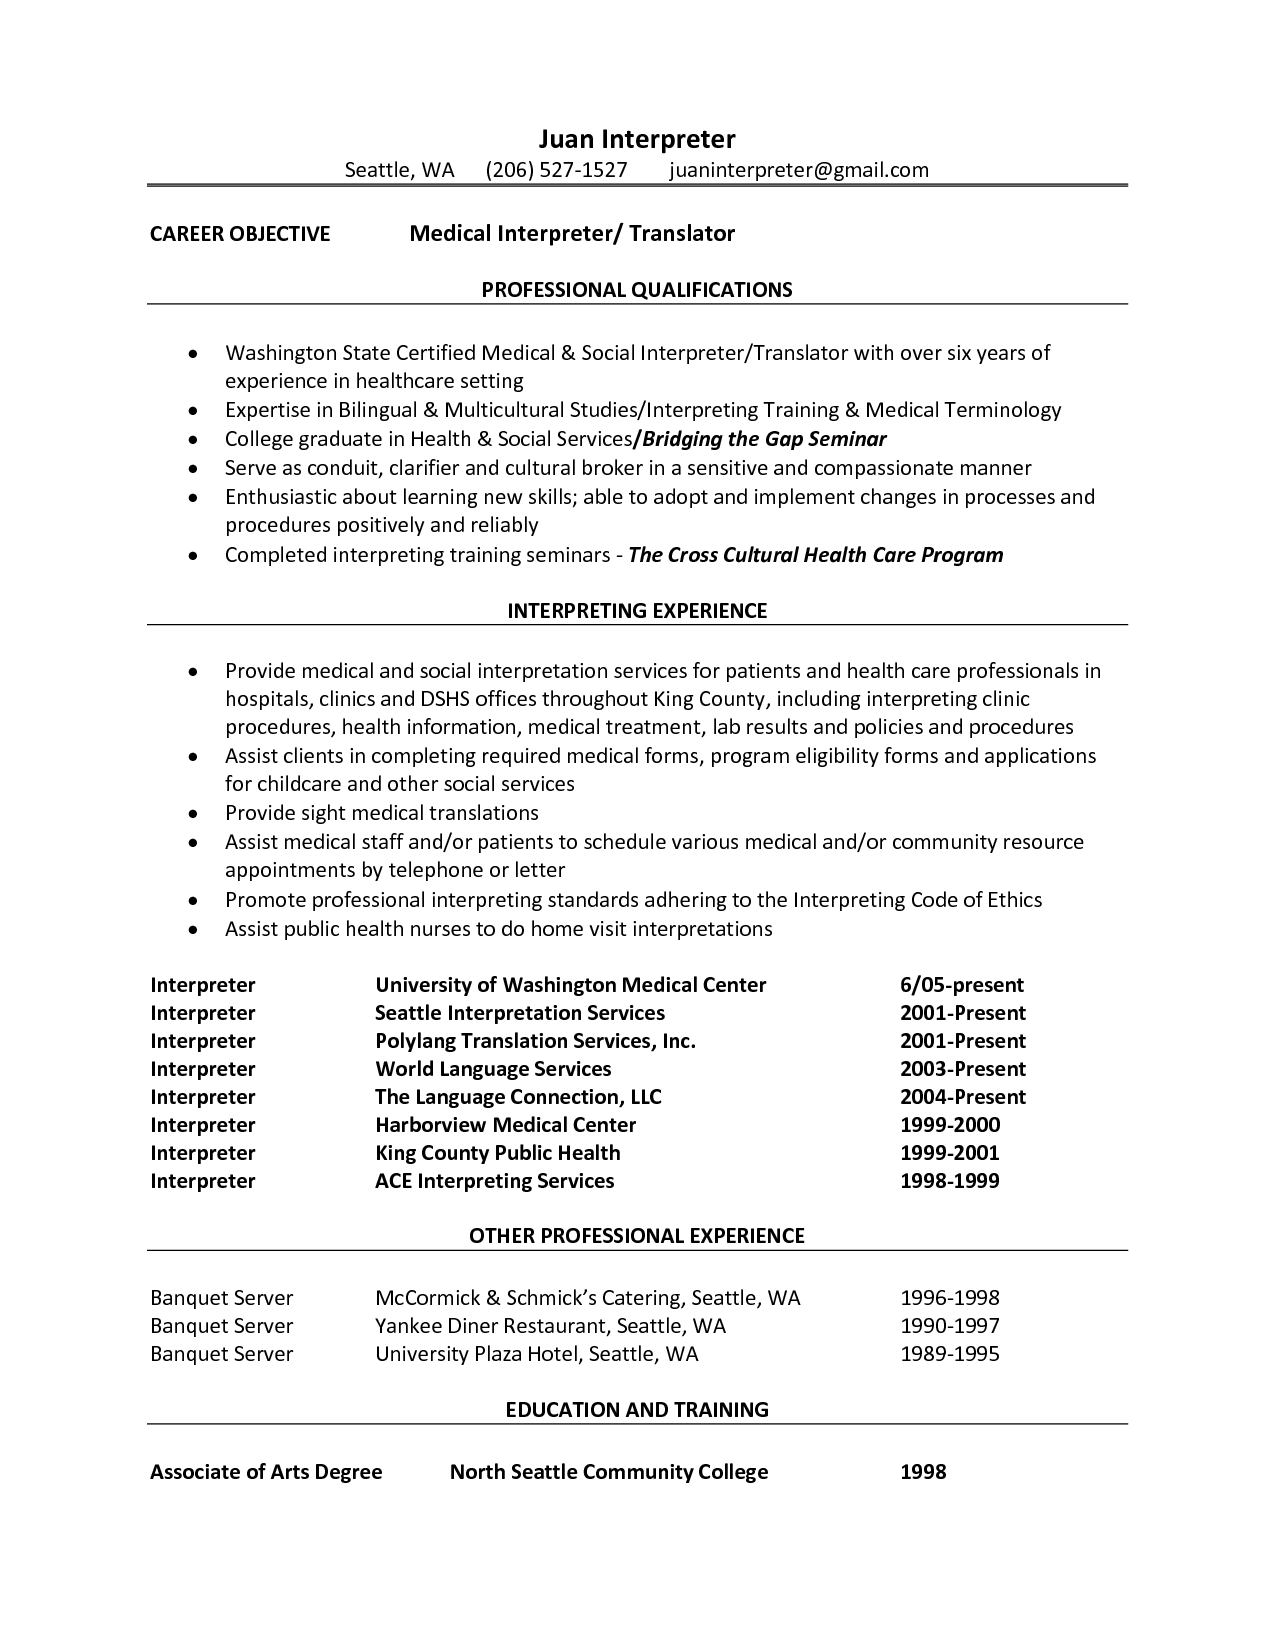 Medical Interpreter Resume Objective Sample By Qdj93270